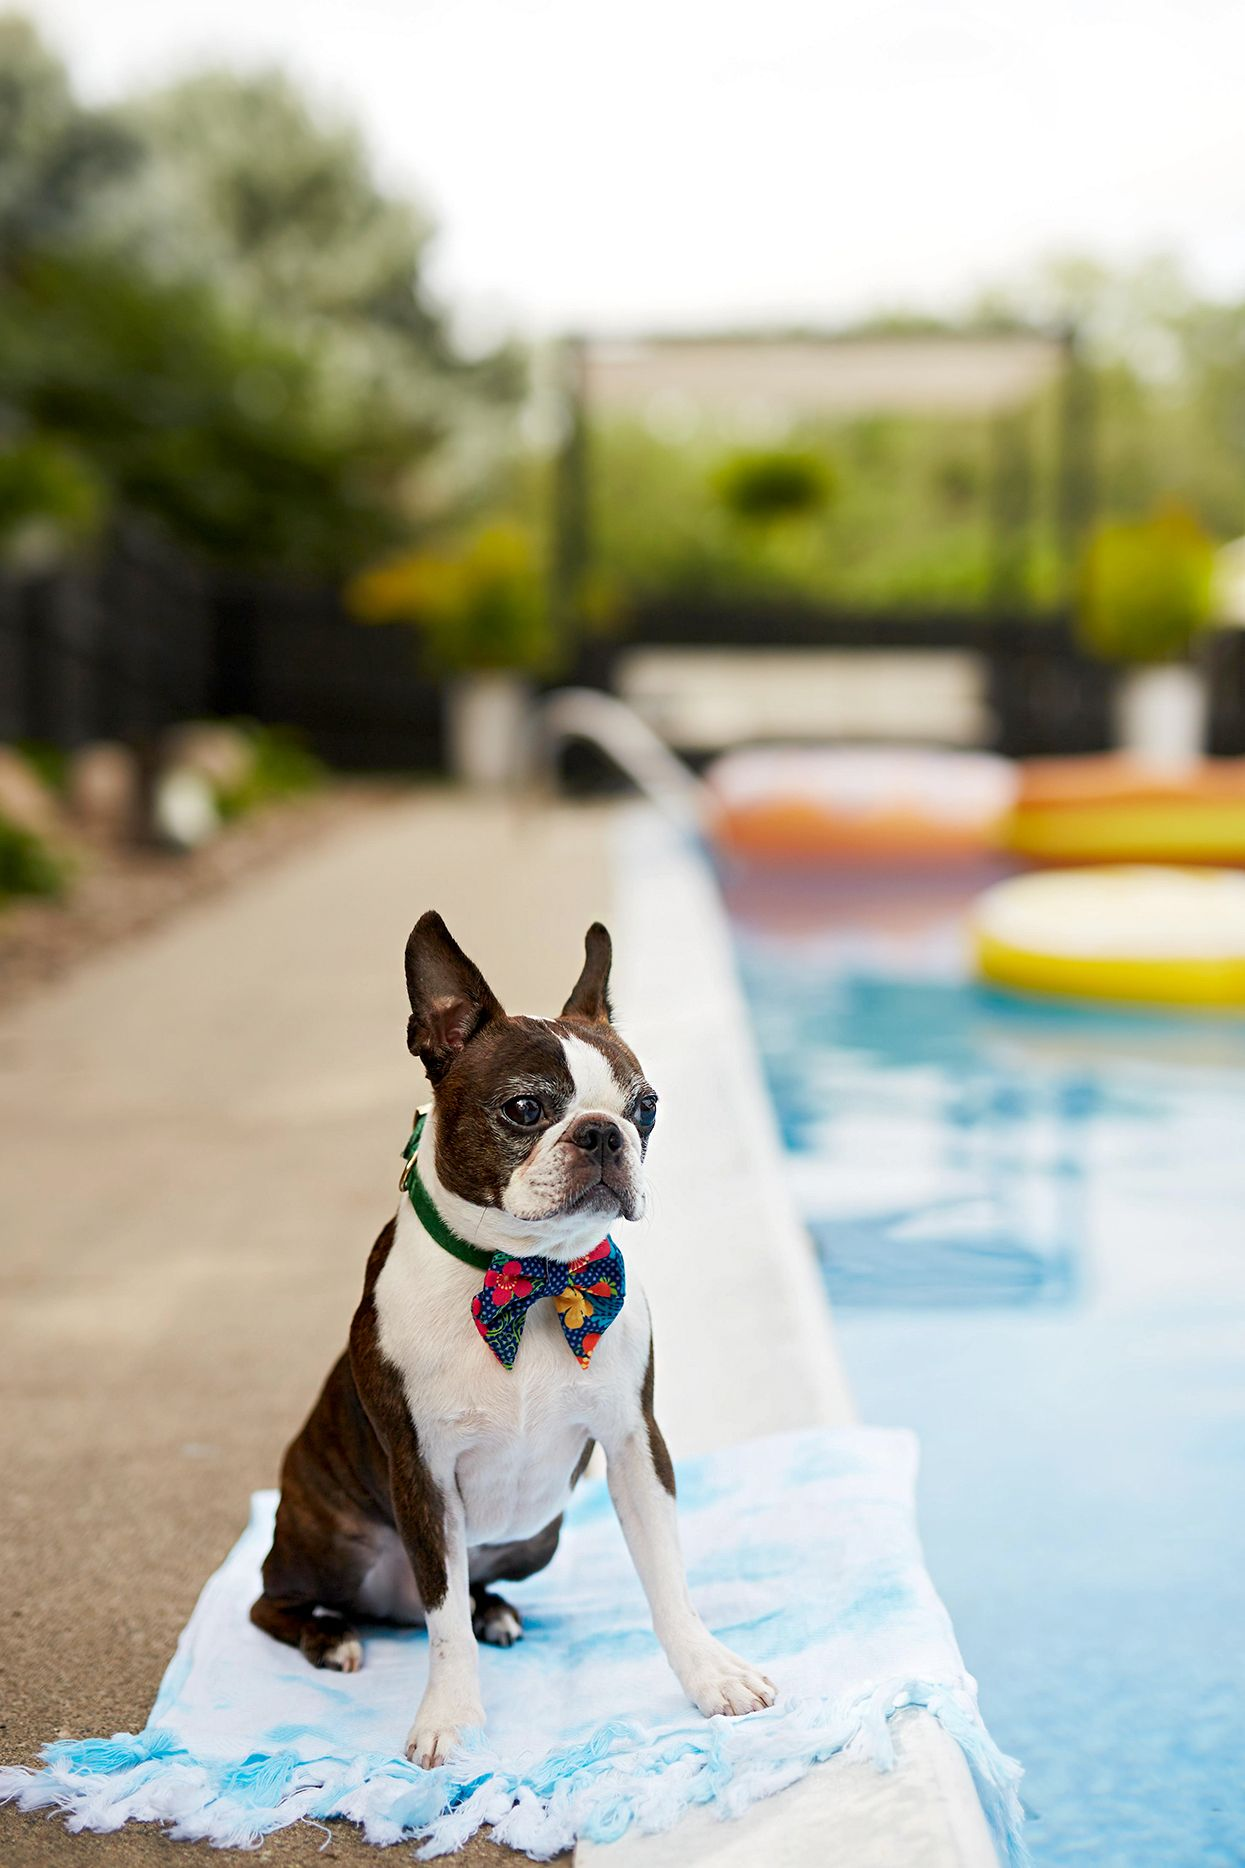 10 Genius Diy Ways To Keep Your Pet Cool In The Summer Pets Your Pet Dogs